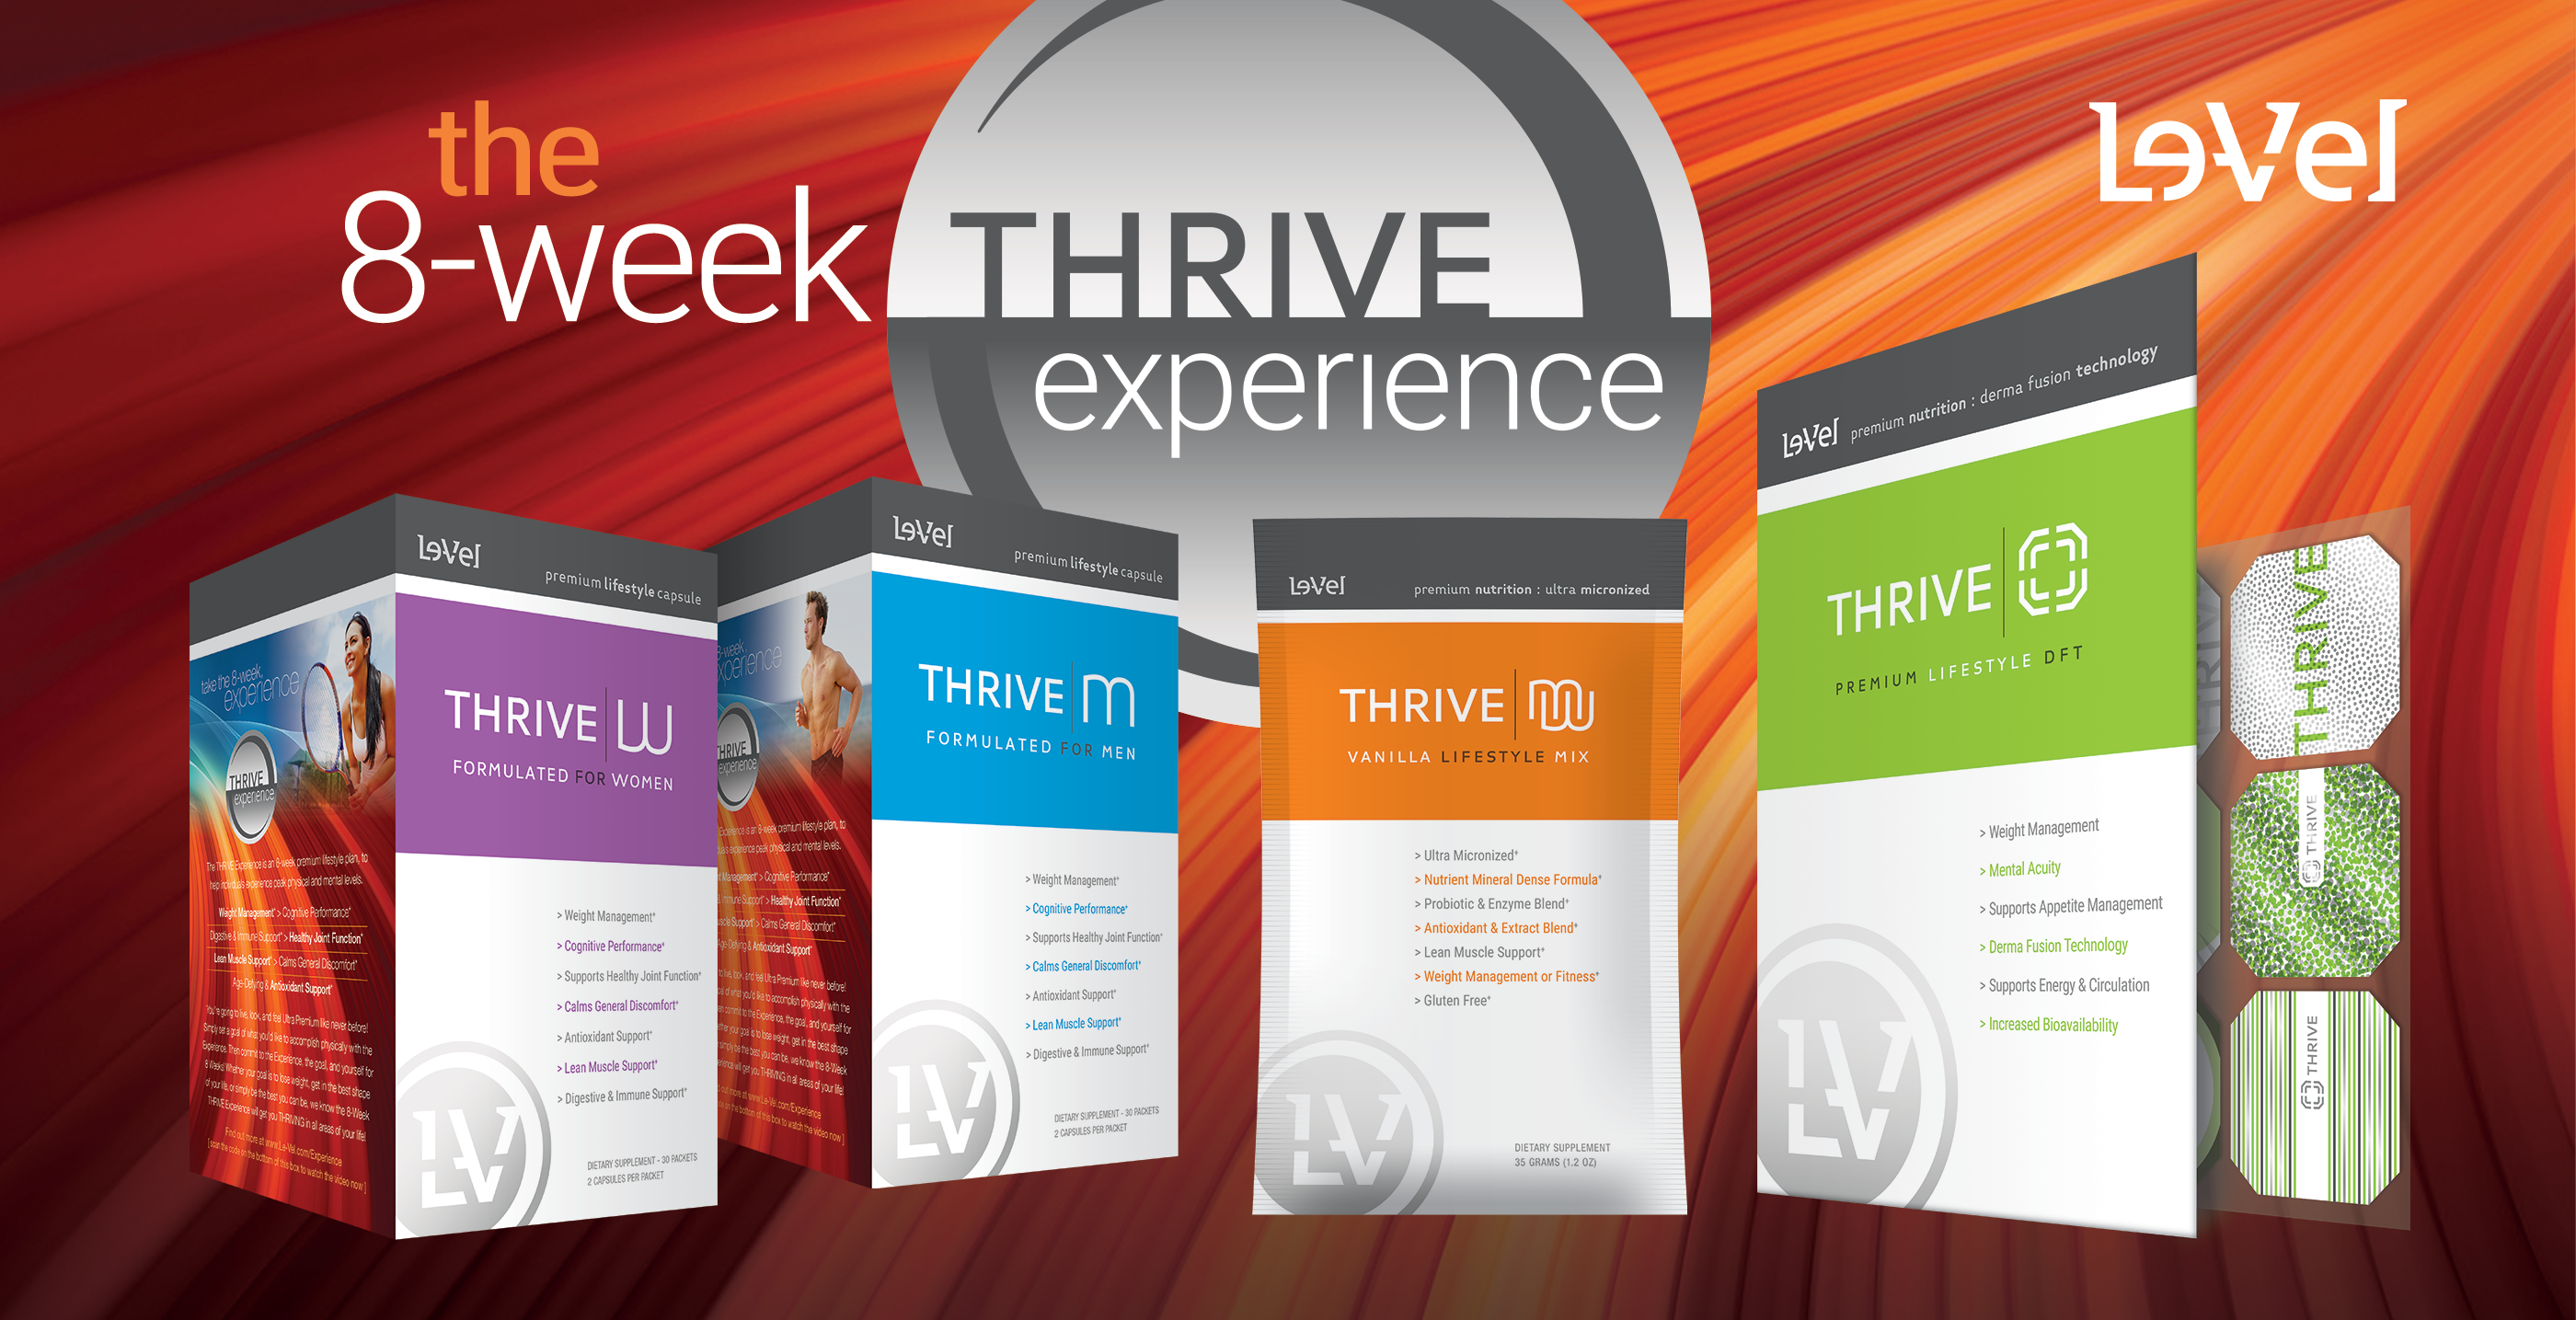 THRIVE Reviews – Strivin' and Thrivin' With Le-Vel!